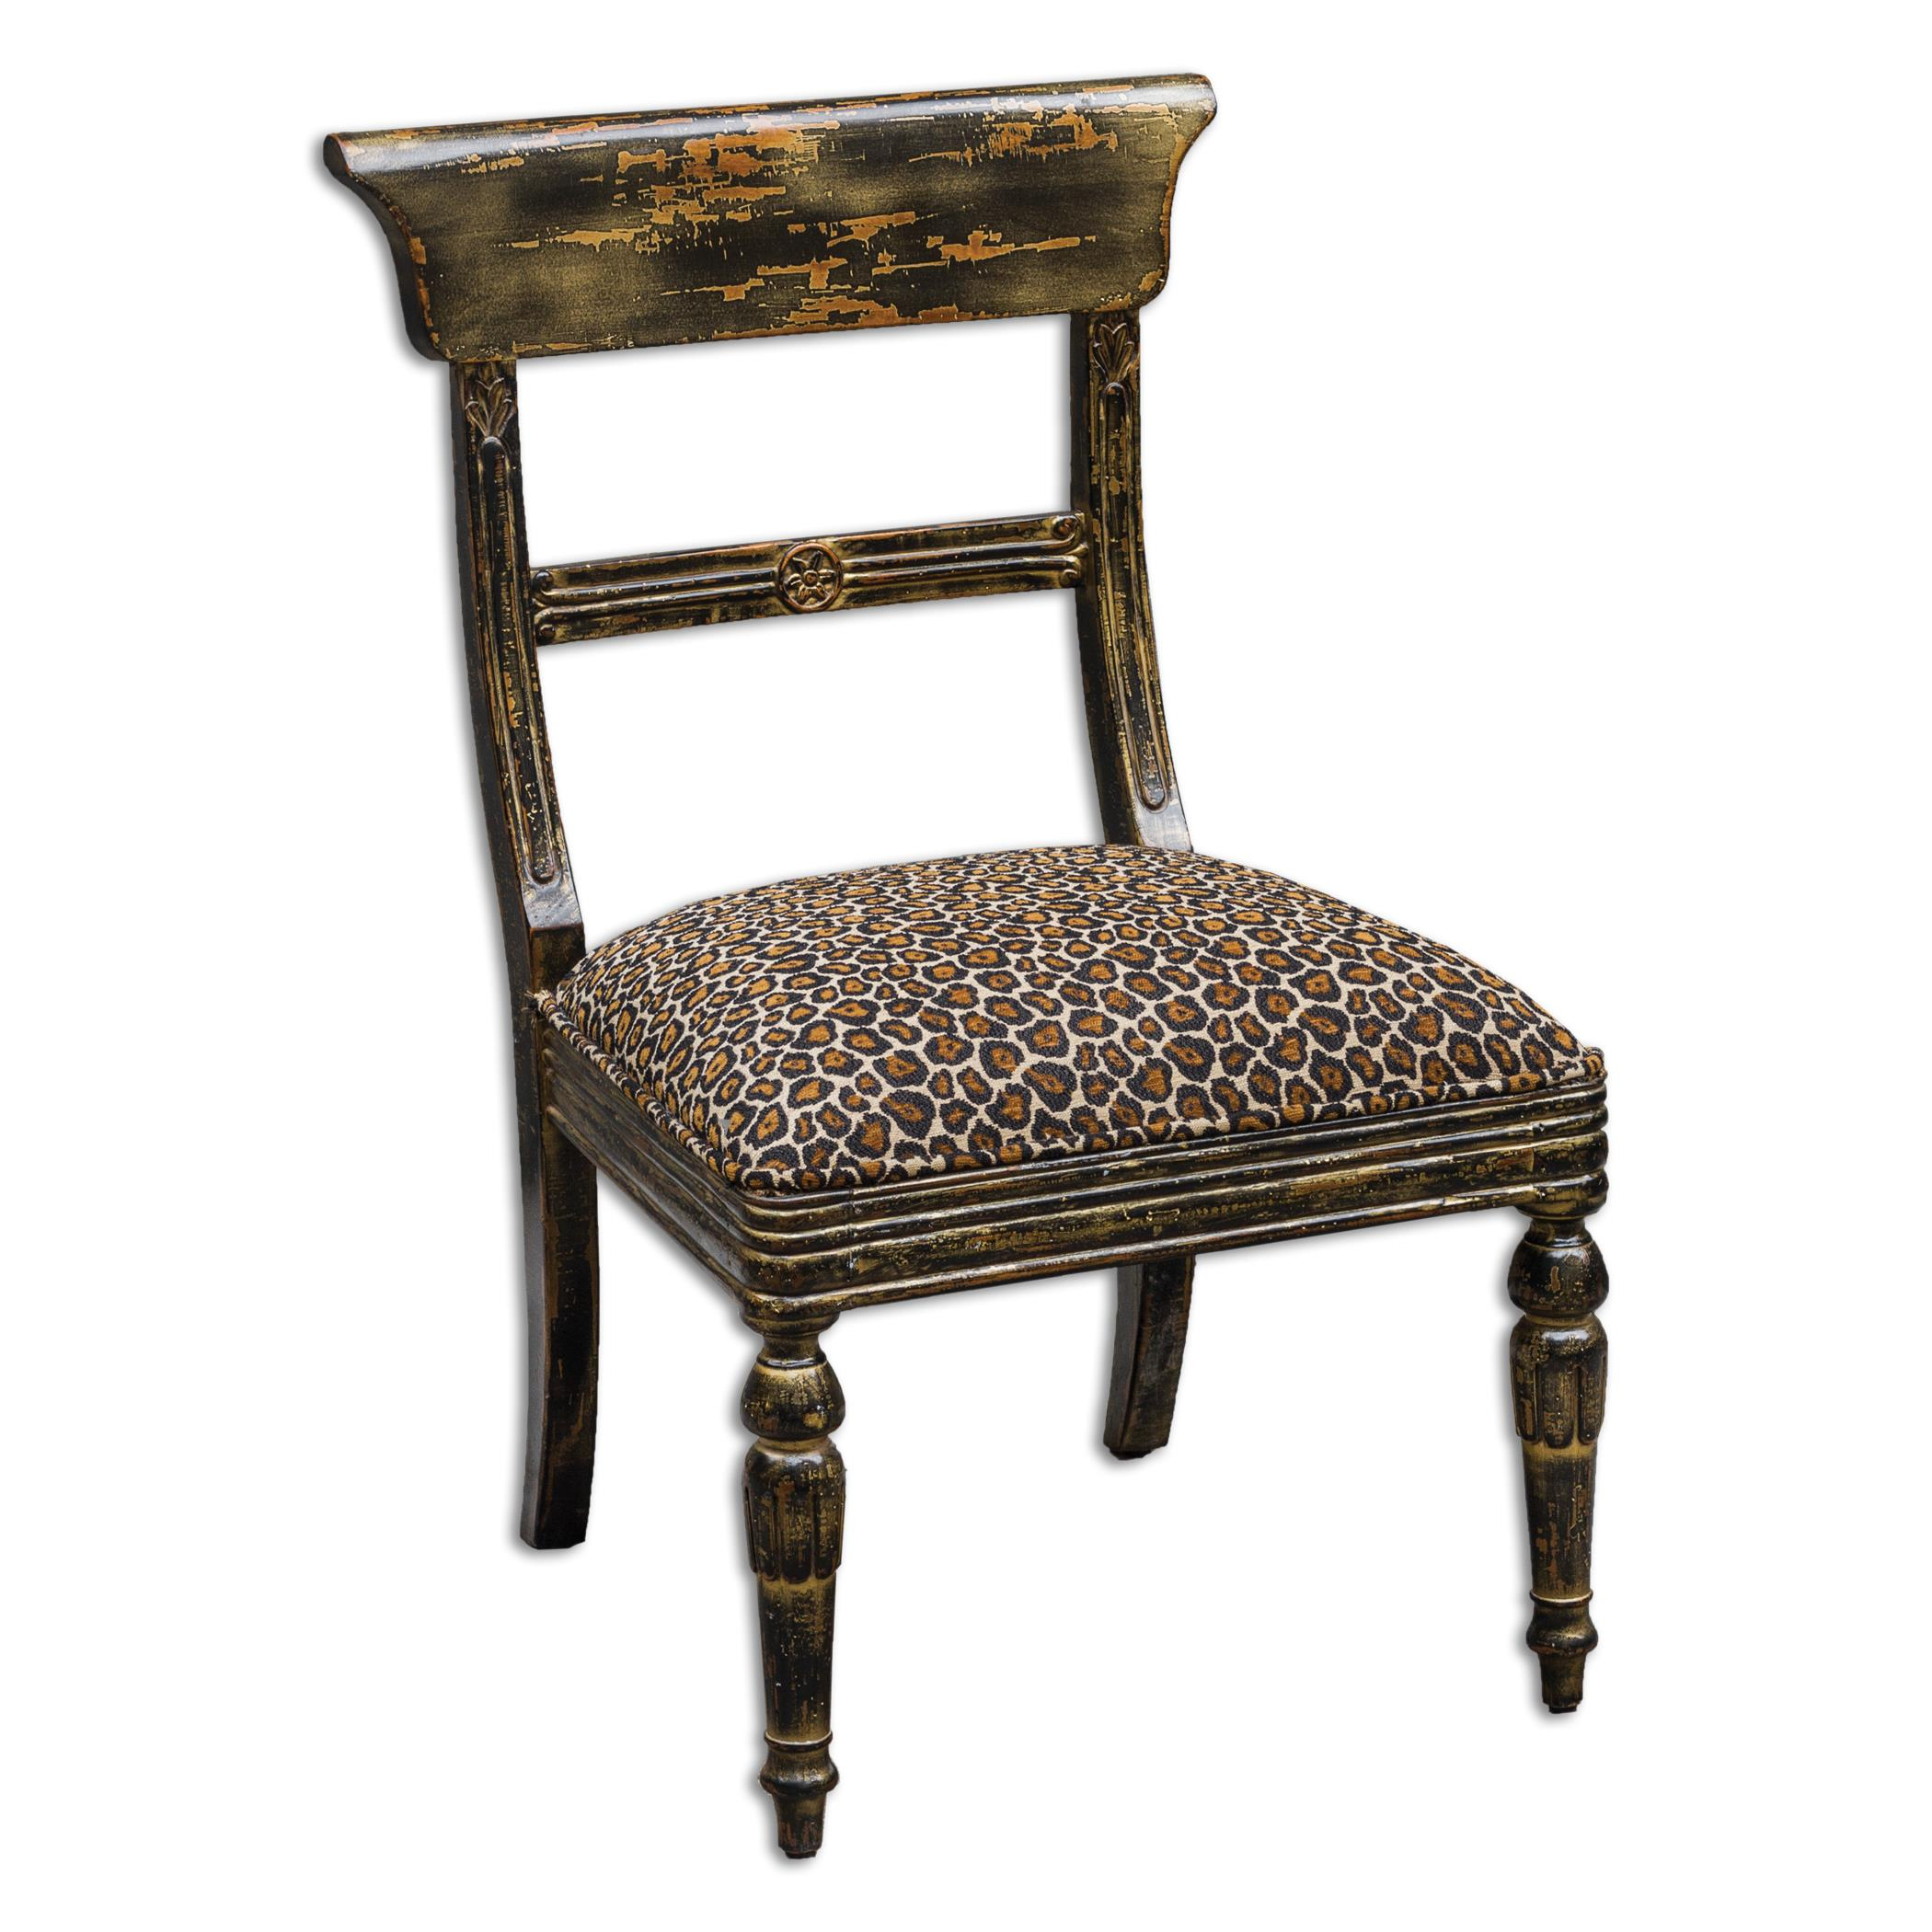 Uttermost Accent Furniture Tambra Leopard Print Accent Chair - Item Number: 23632